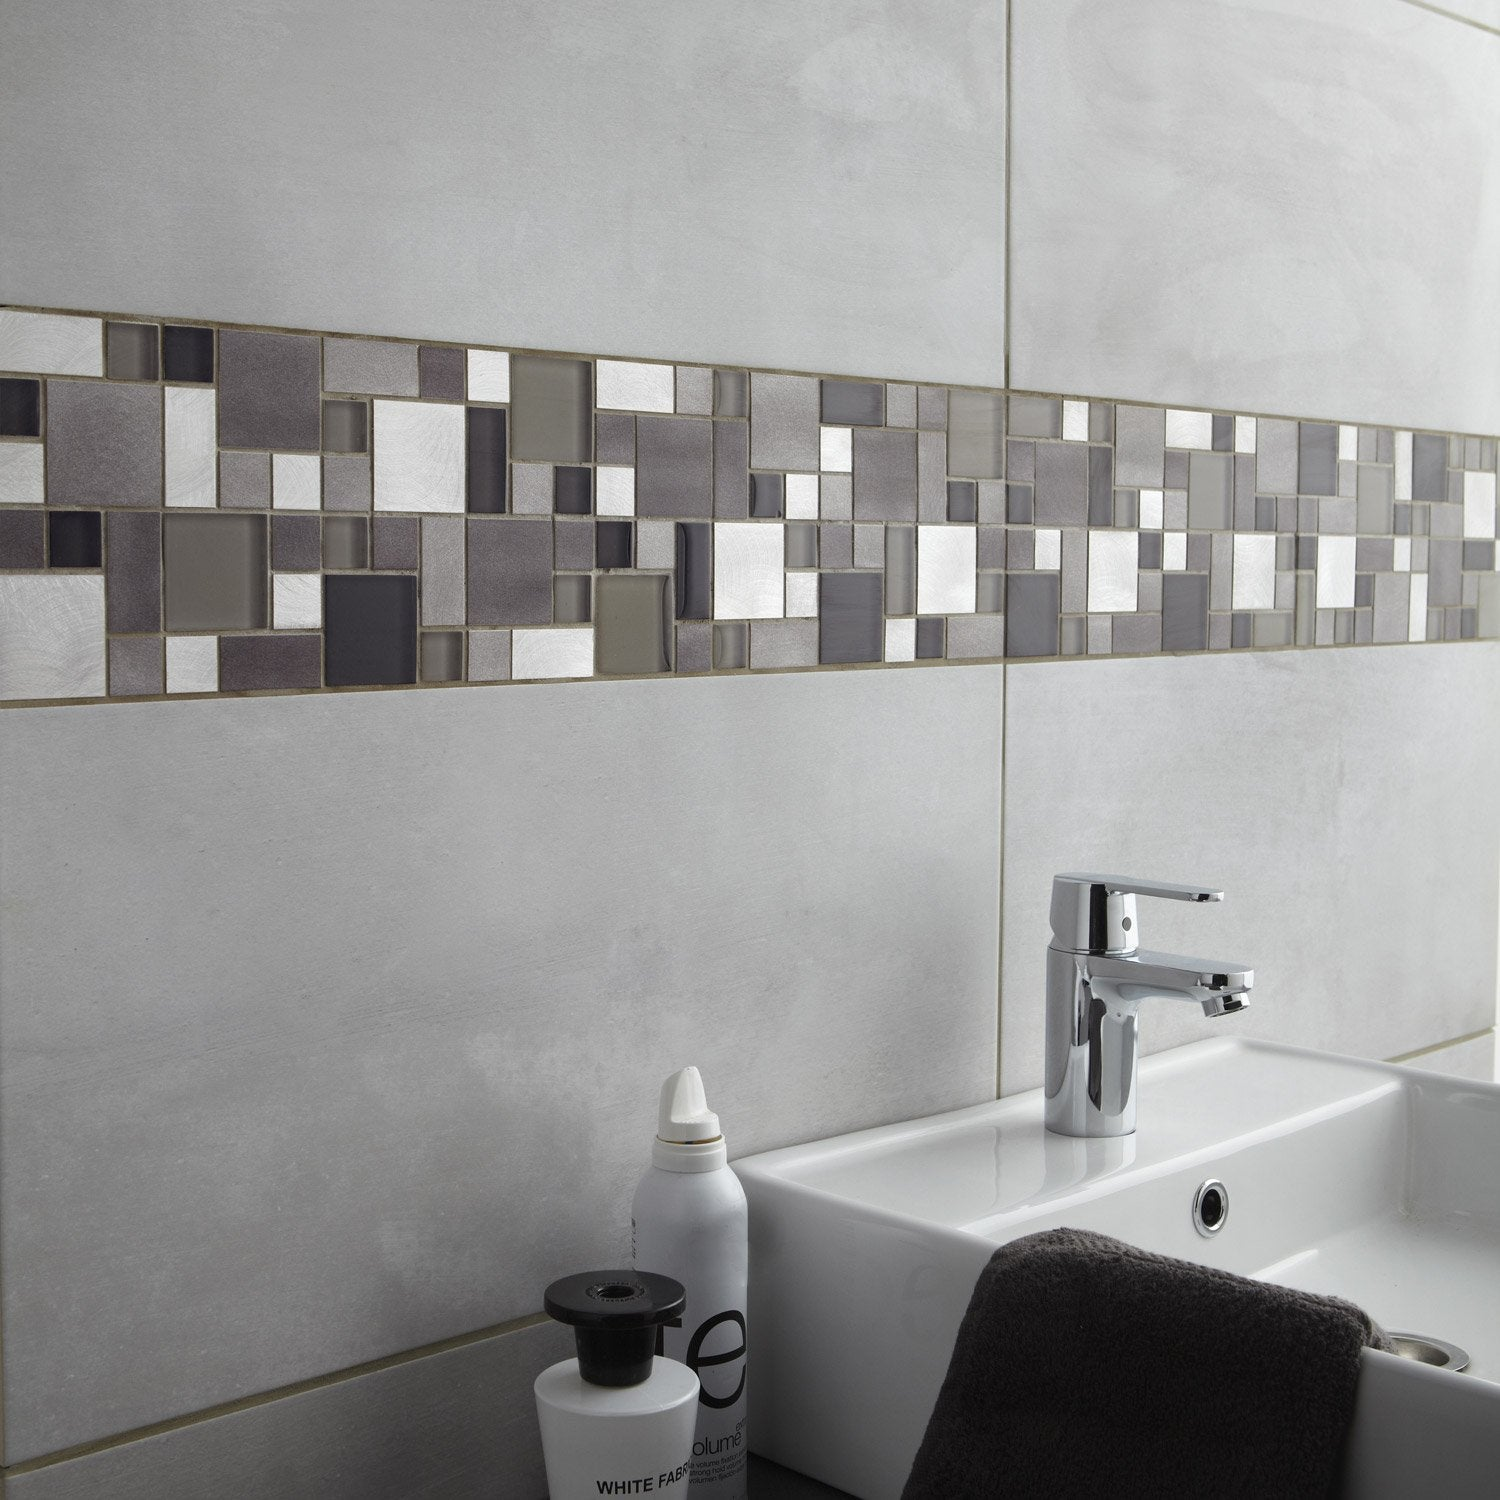 Fa ence mur gris clair denver x cm leroy merlin for Simulateur faience salle de bain